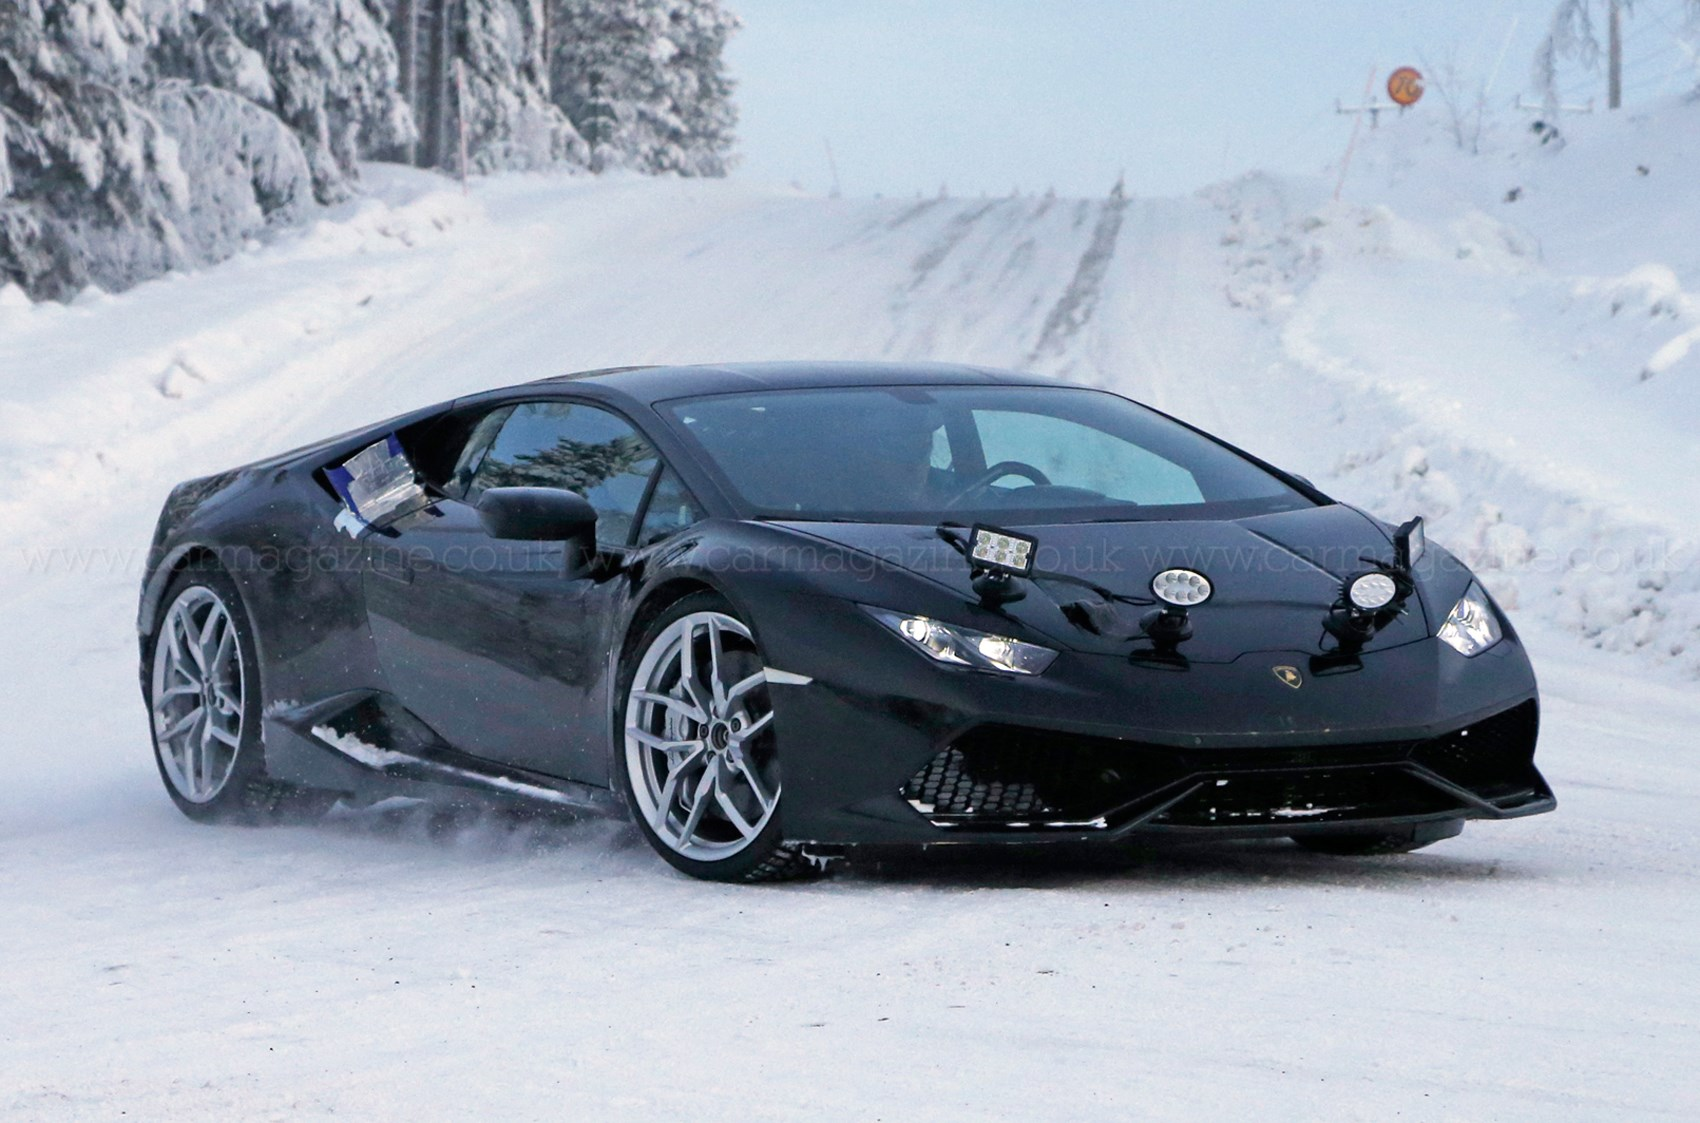 Lamborghini Huracan Superleggera spotted in the snow-1